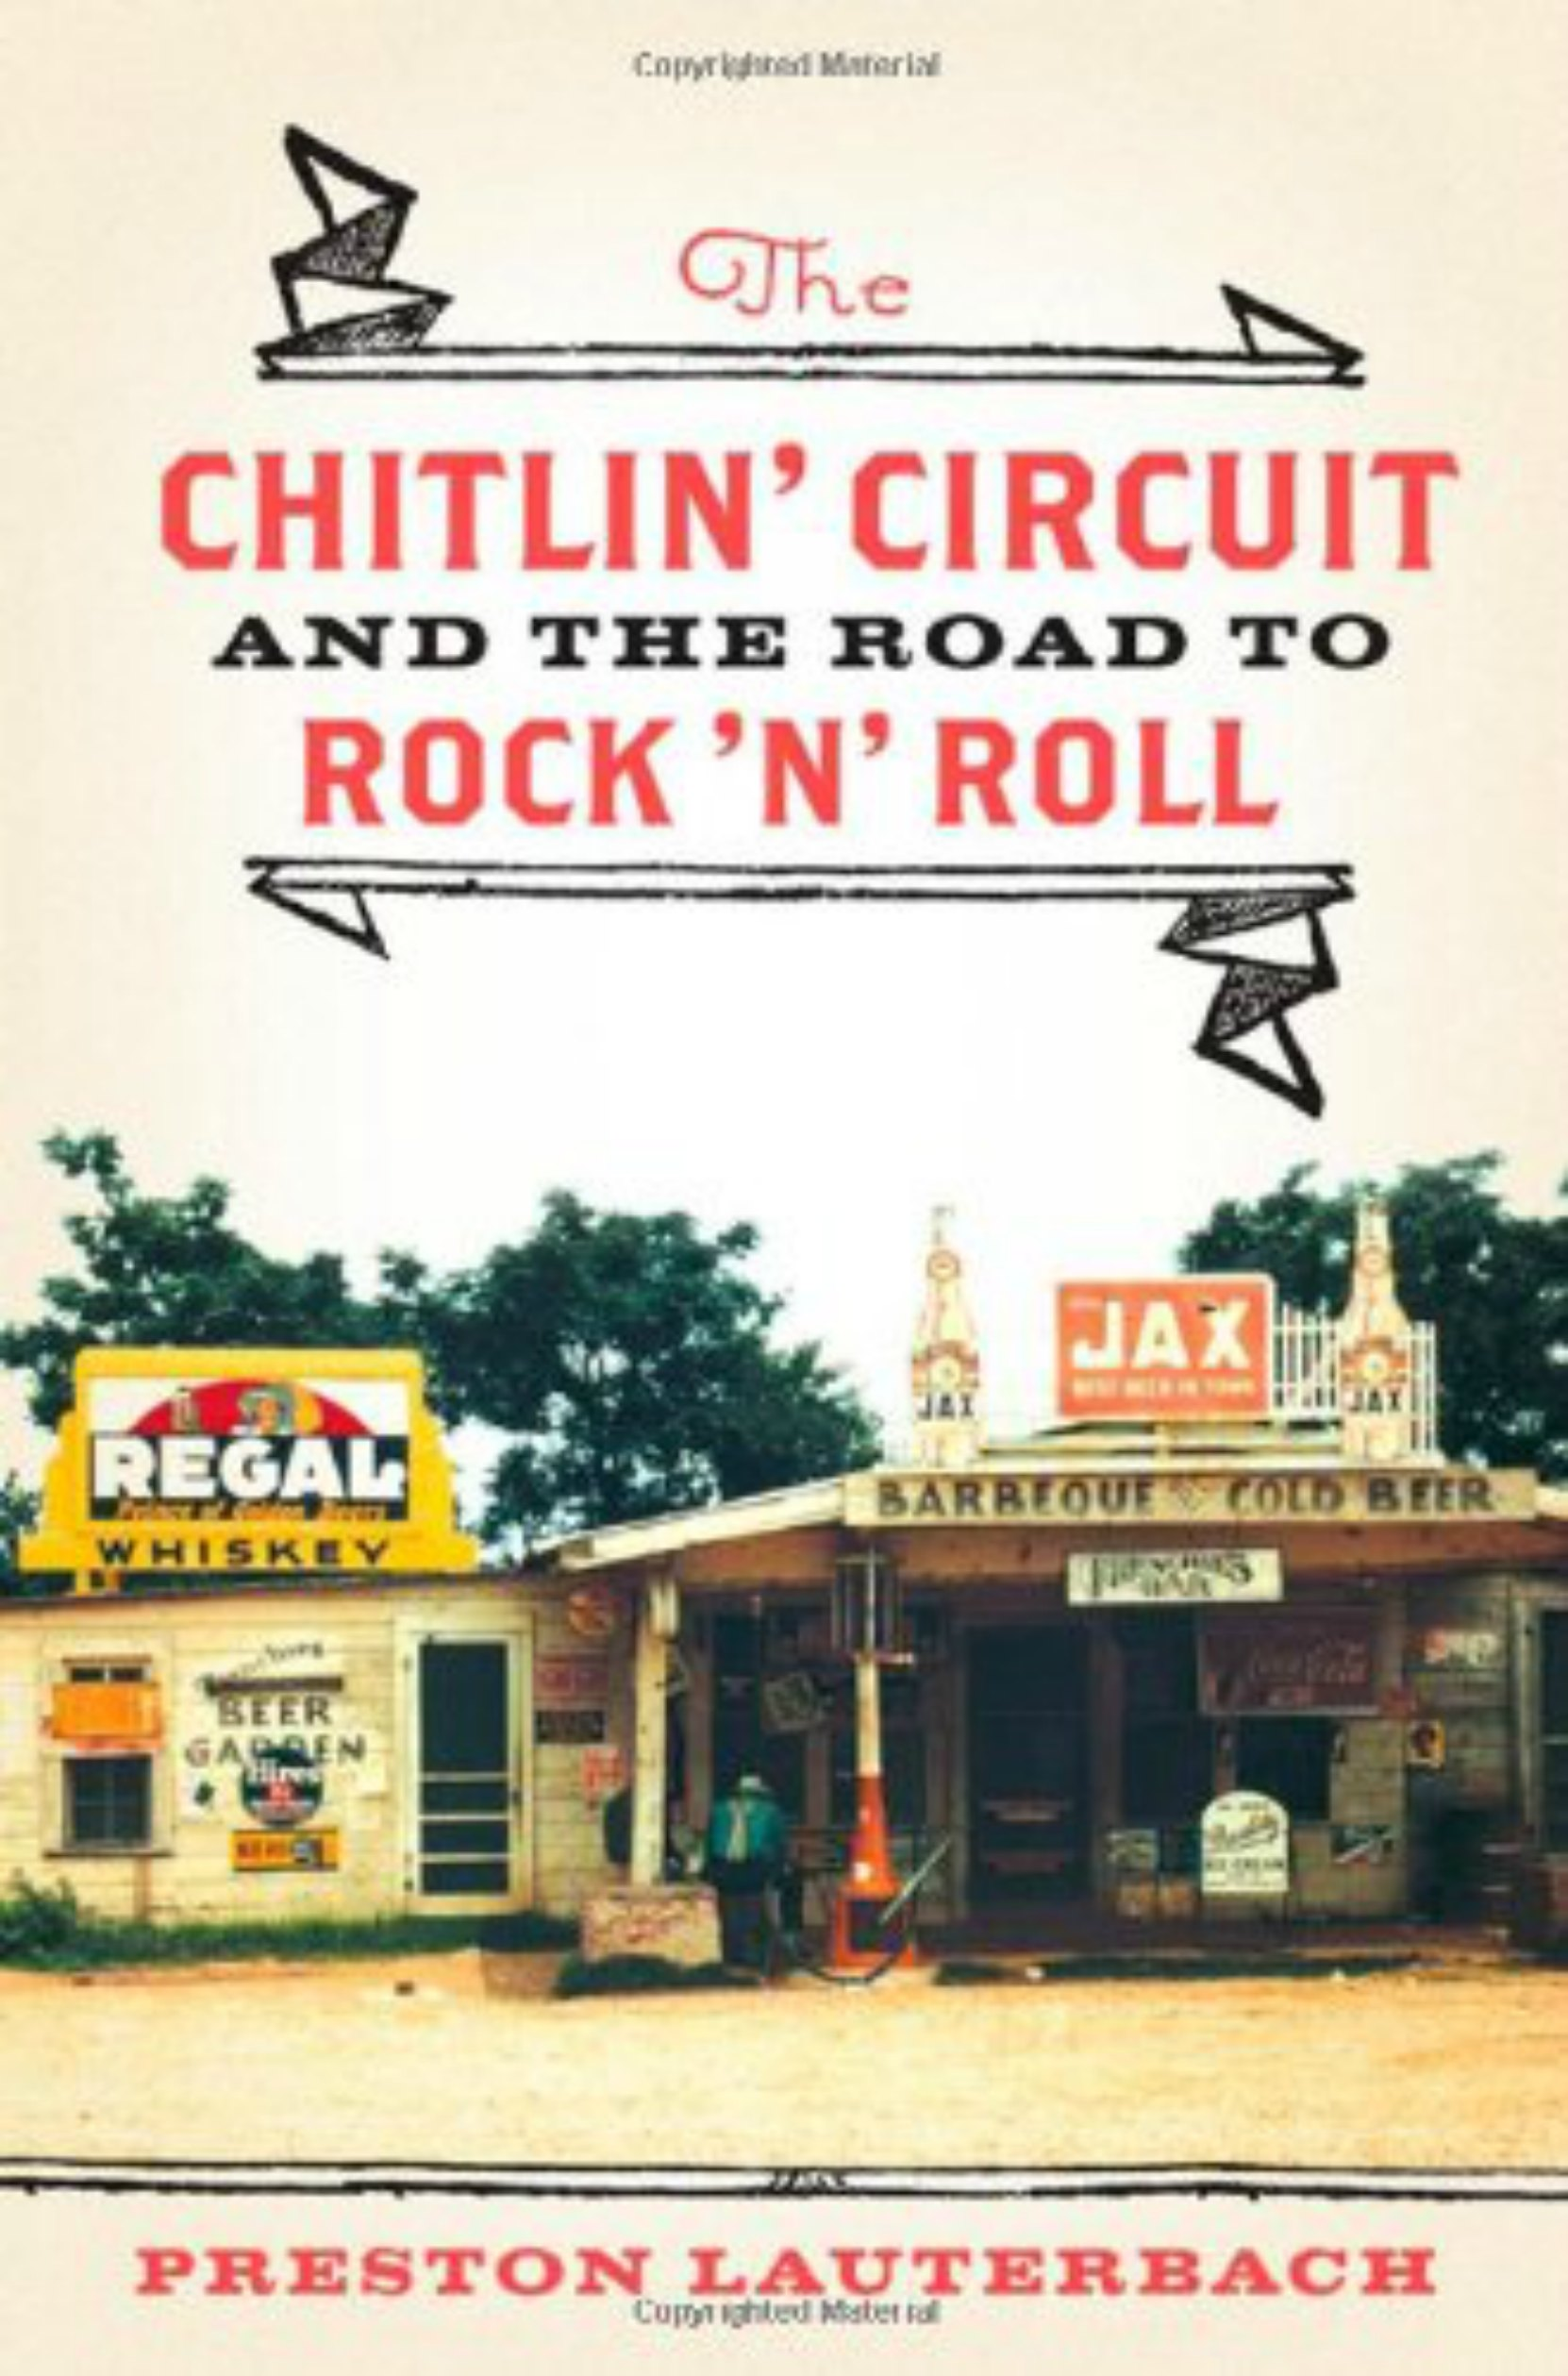 Preston Lauterbach, The Chitlin' Circuit and the Road To Rock n' Roll, book cover